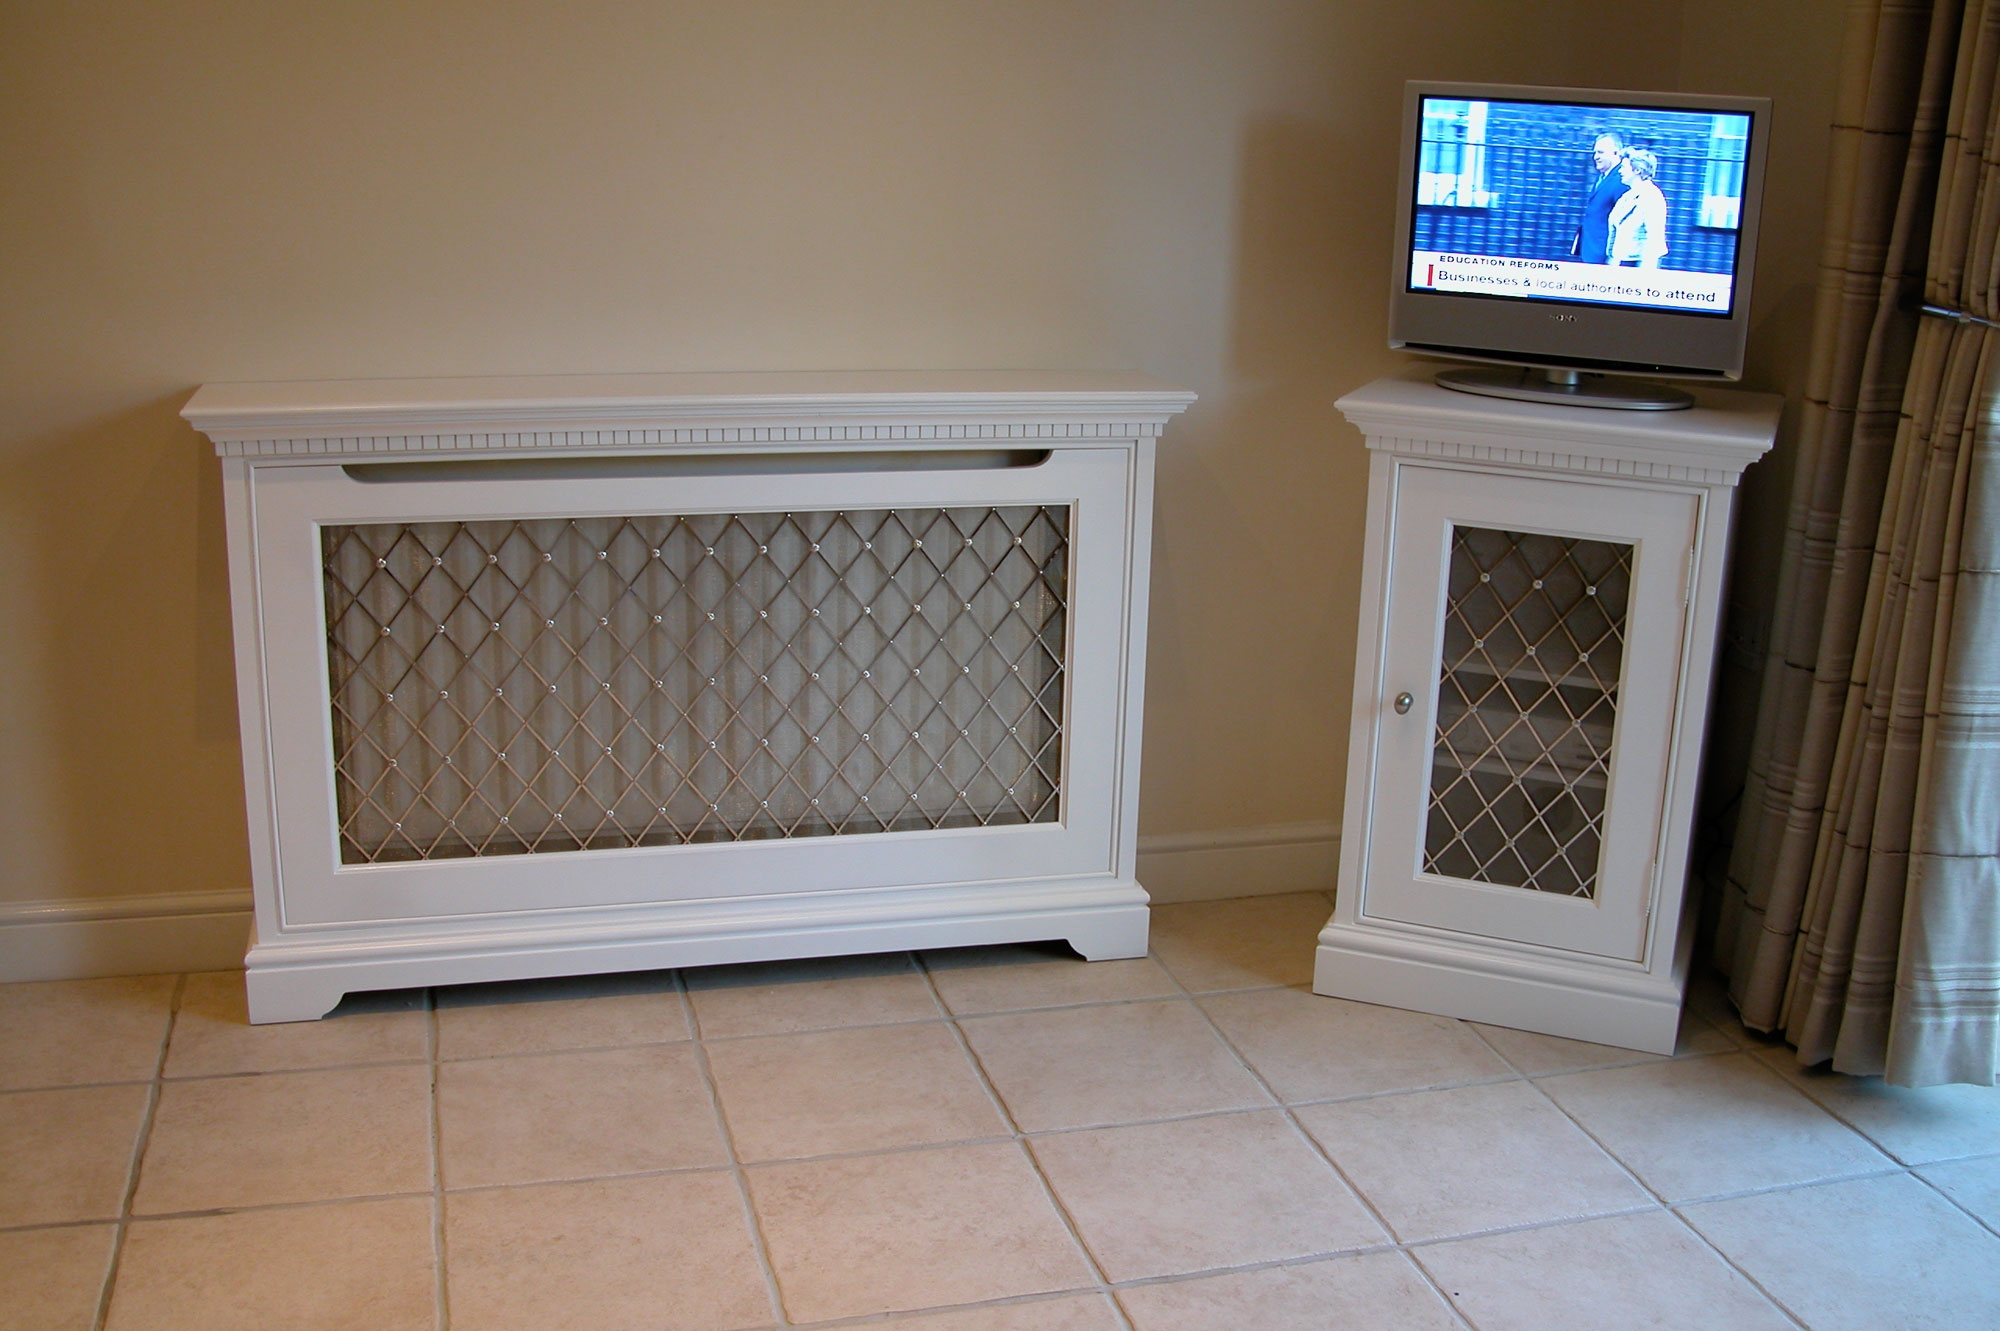 Bespoke Tv Cabinets Custom Made Tv Cabinets Pertaining To Bespoke Tv Cabinets (View 11 of 15)